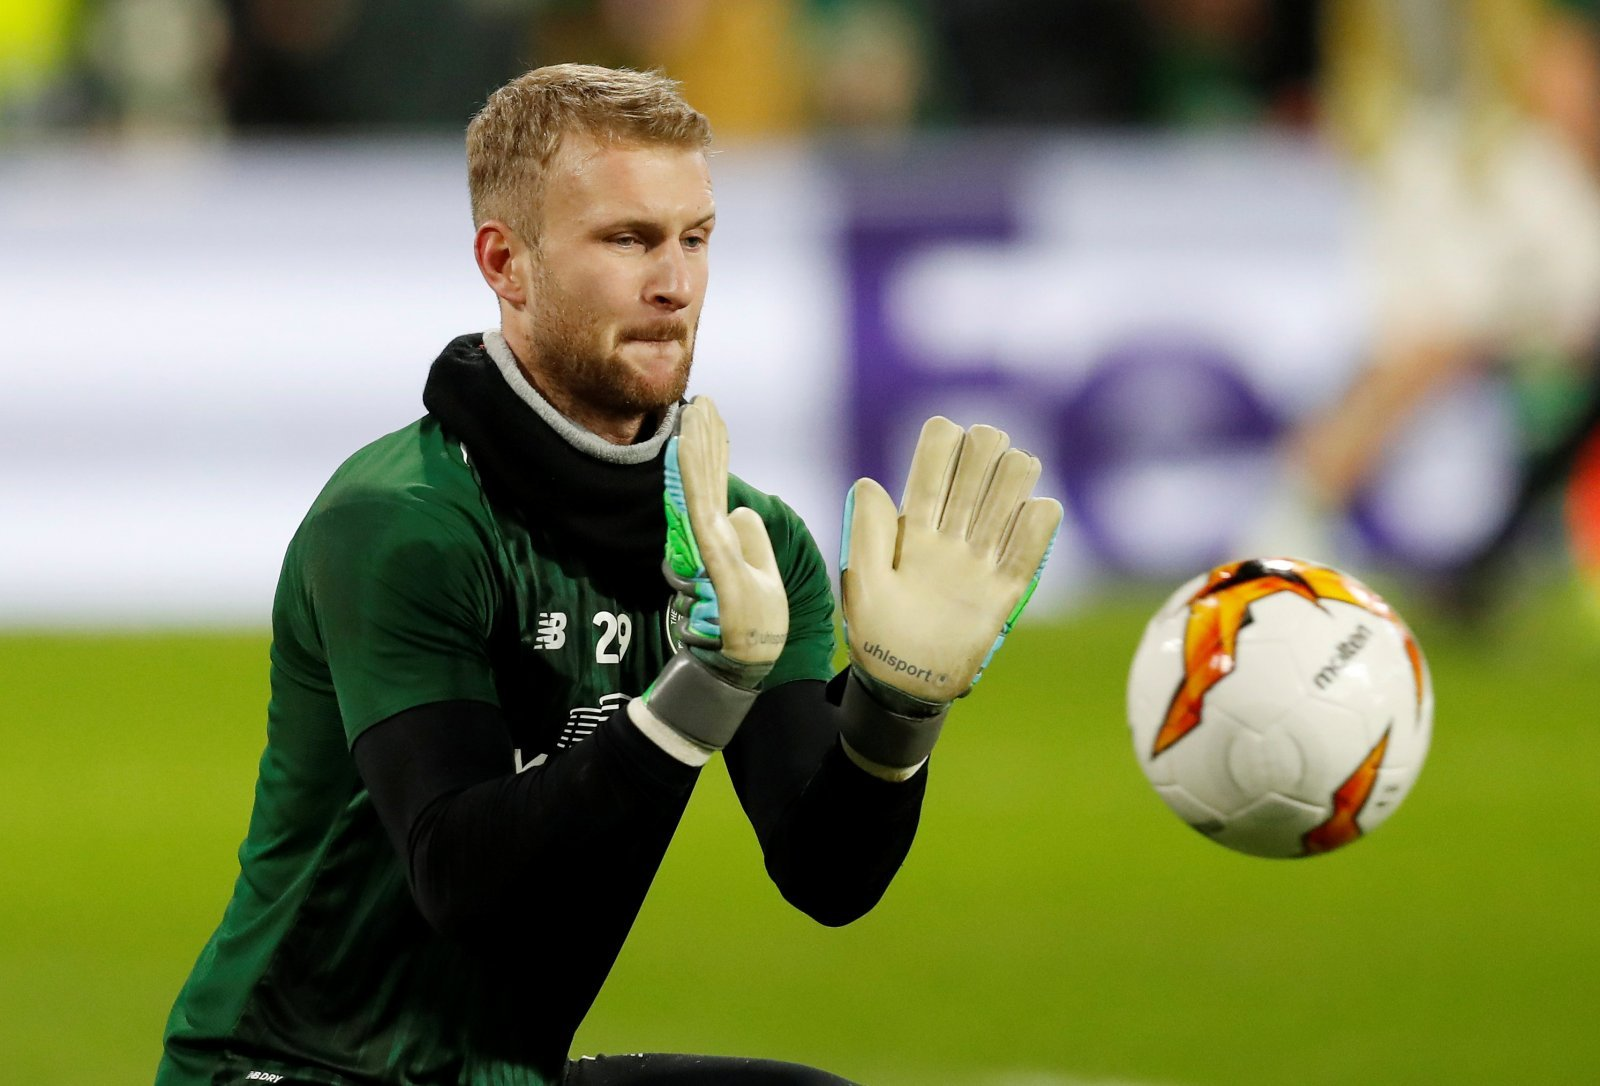 Celtic: Fans bemused by club's decision to award new contract to Scott Bain